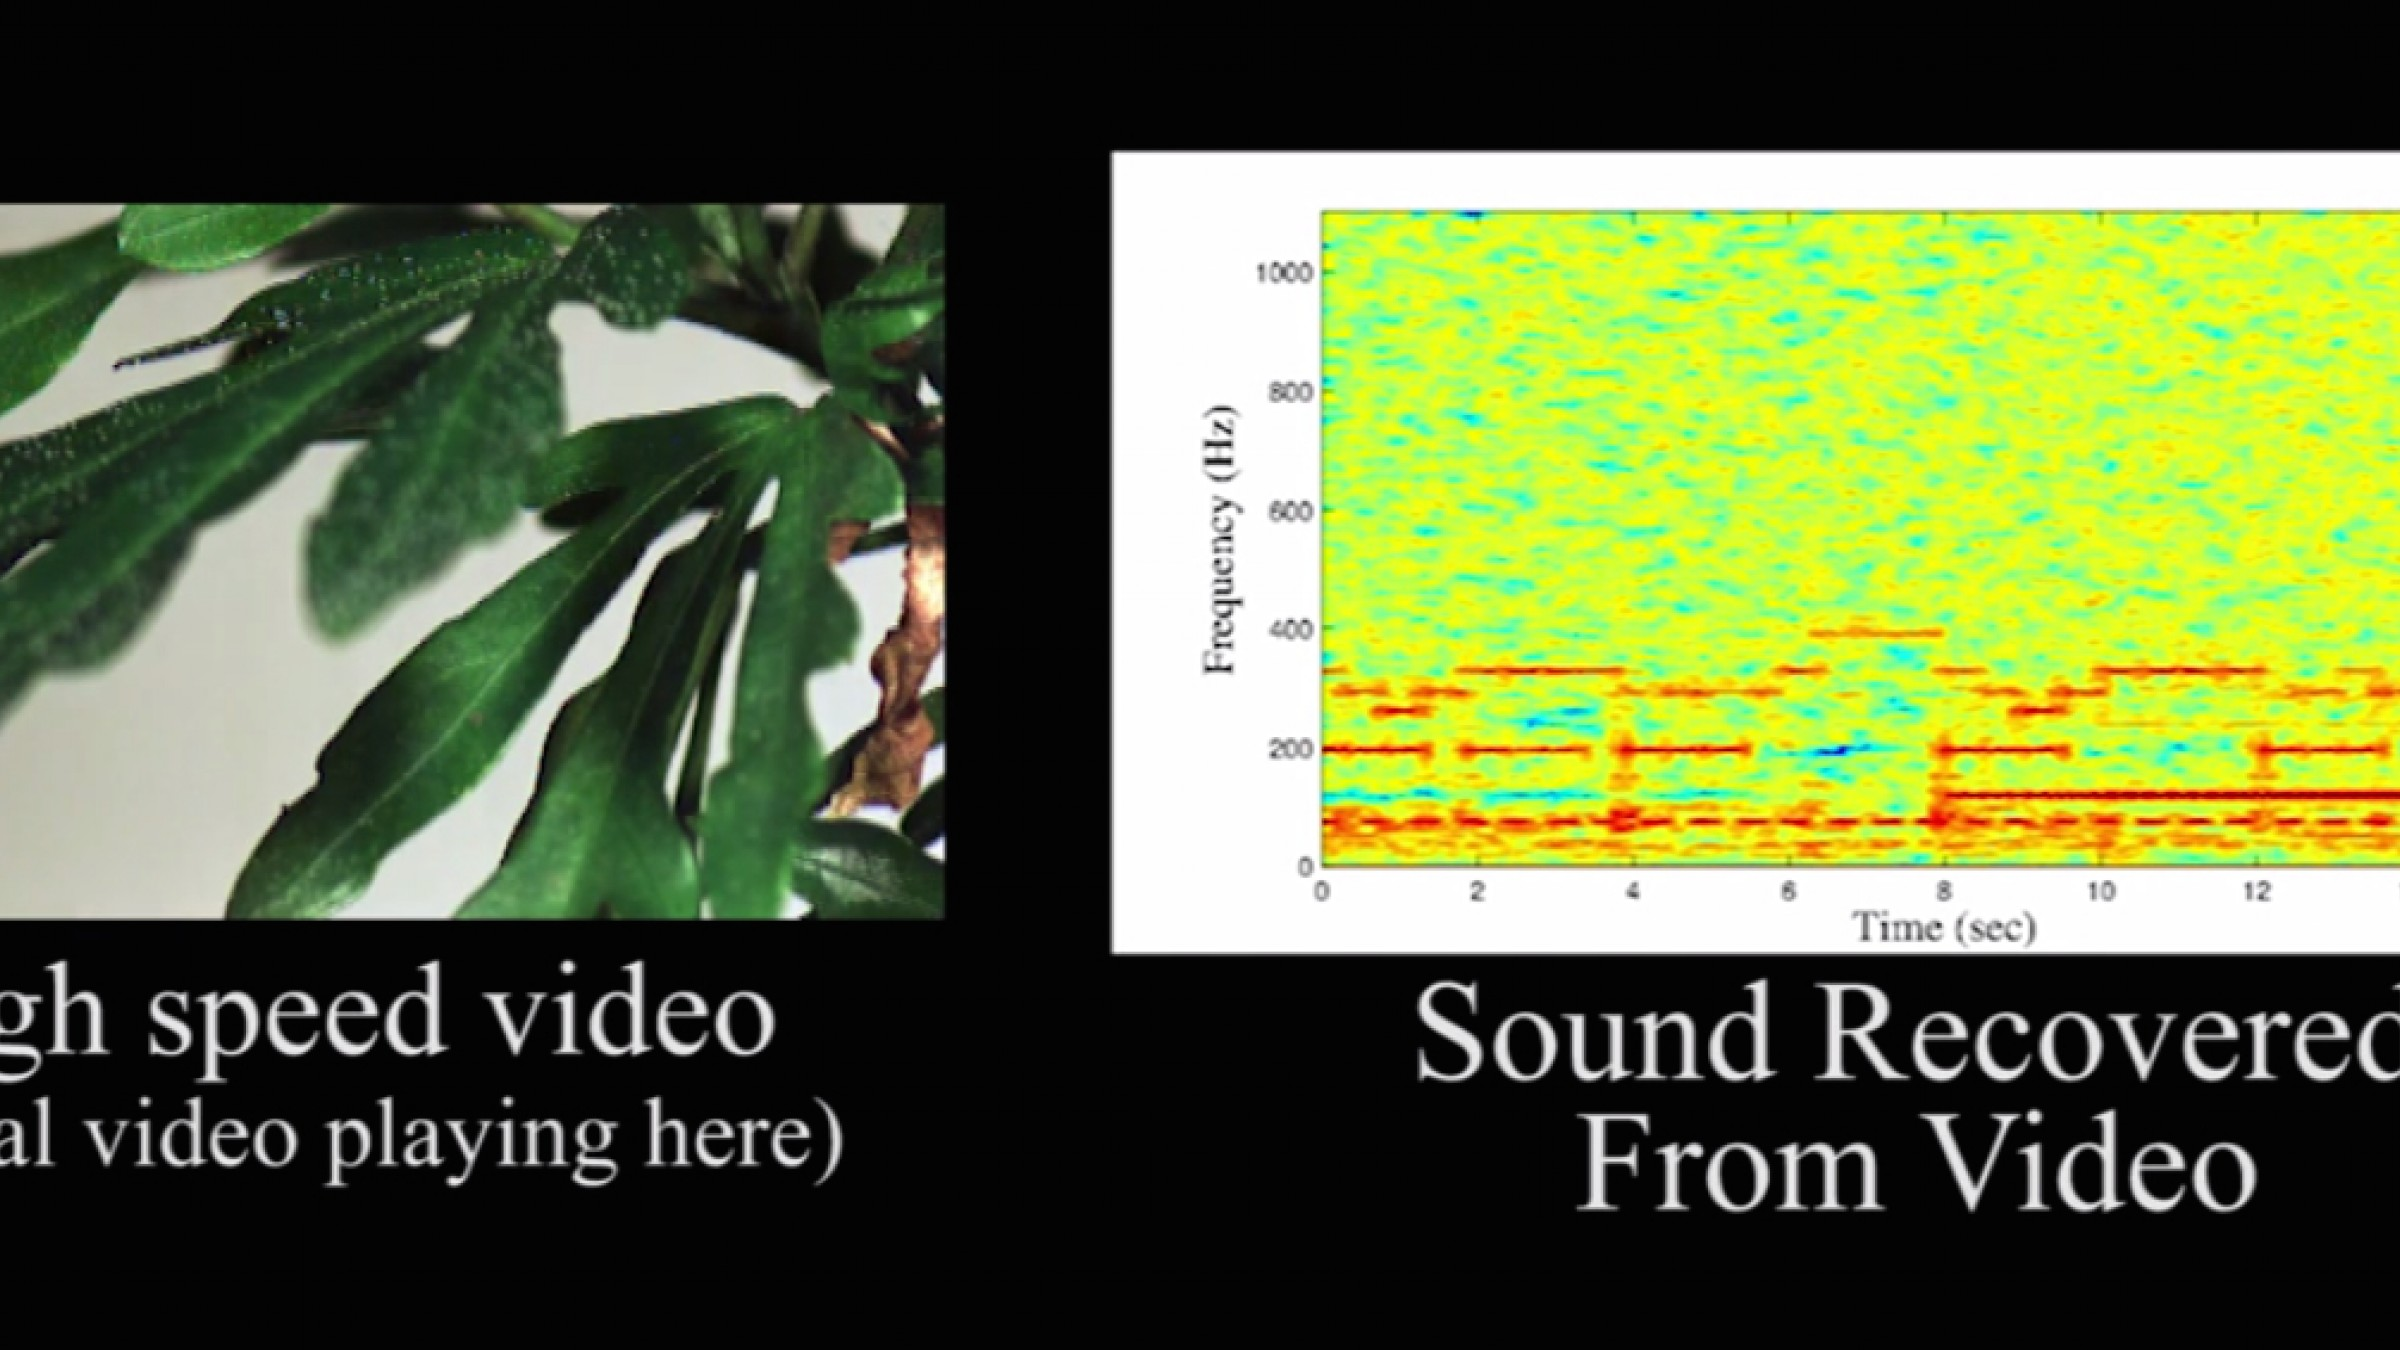 Researchers Have Developed a Way to Extract Audio From Silent Videos